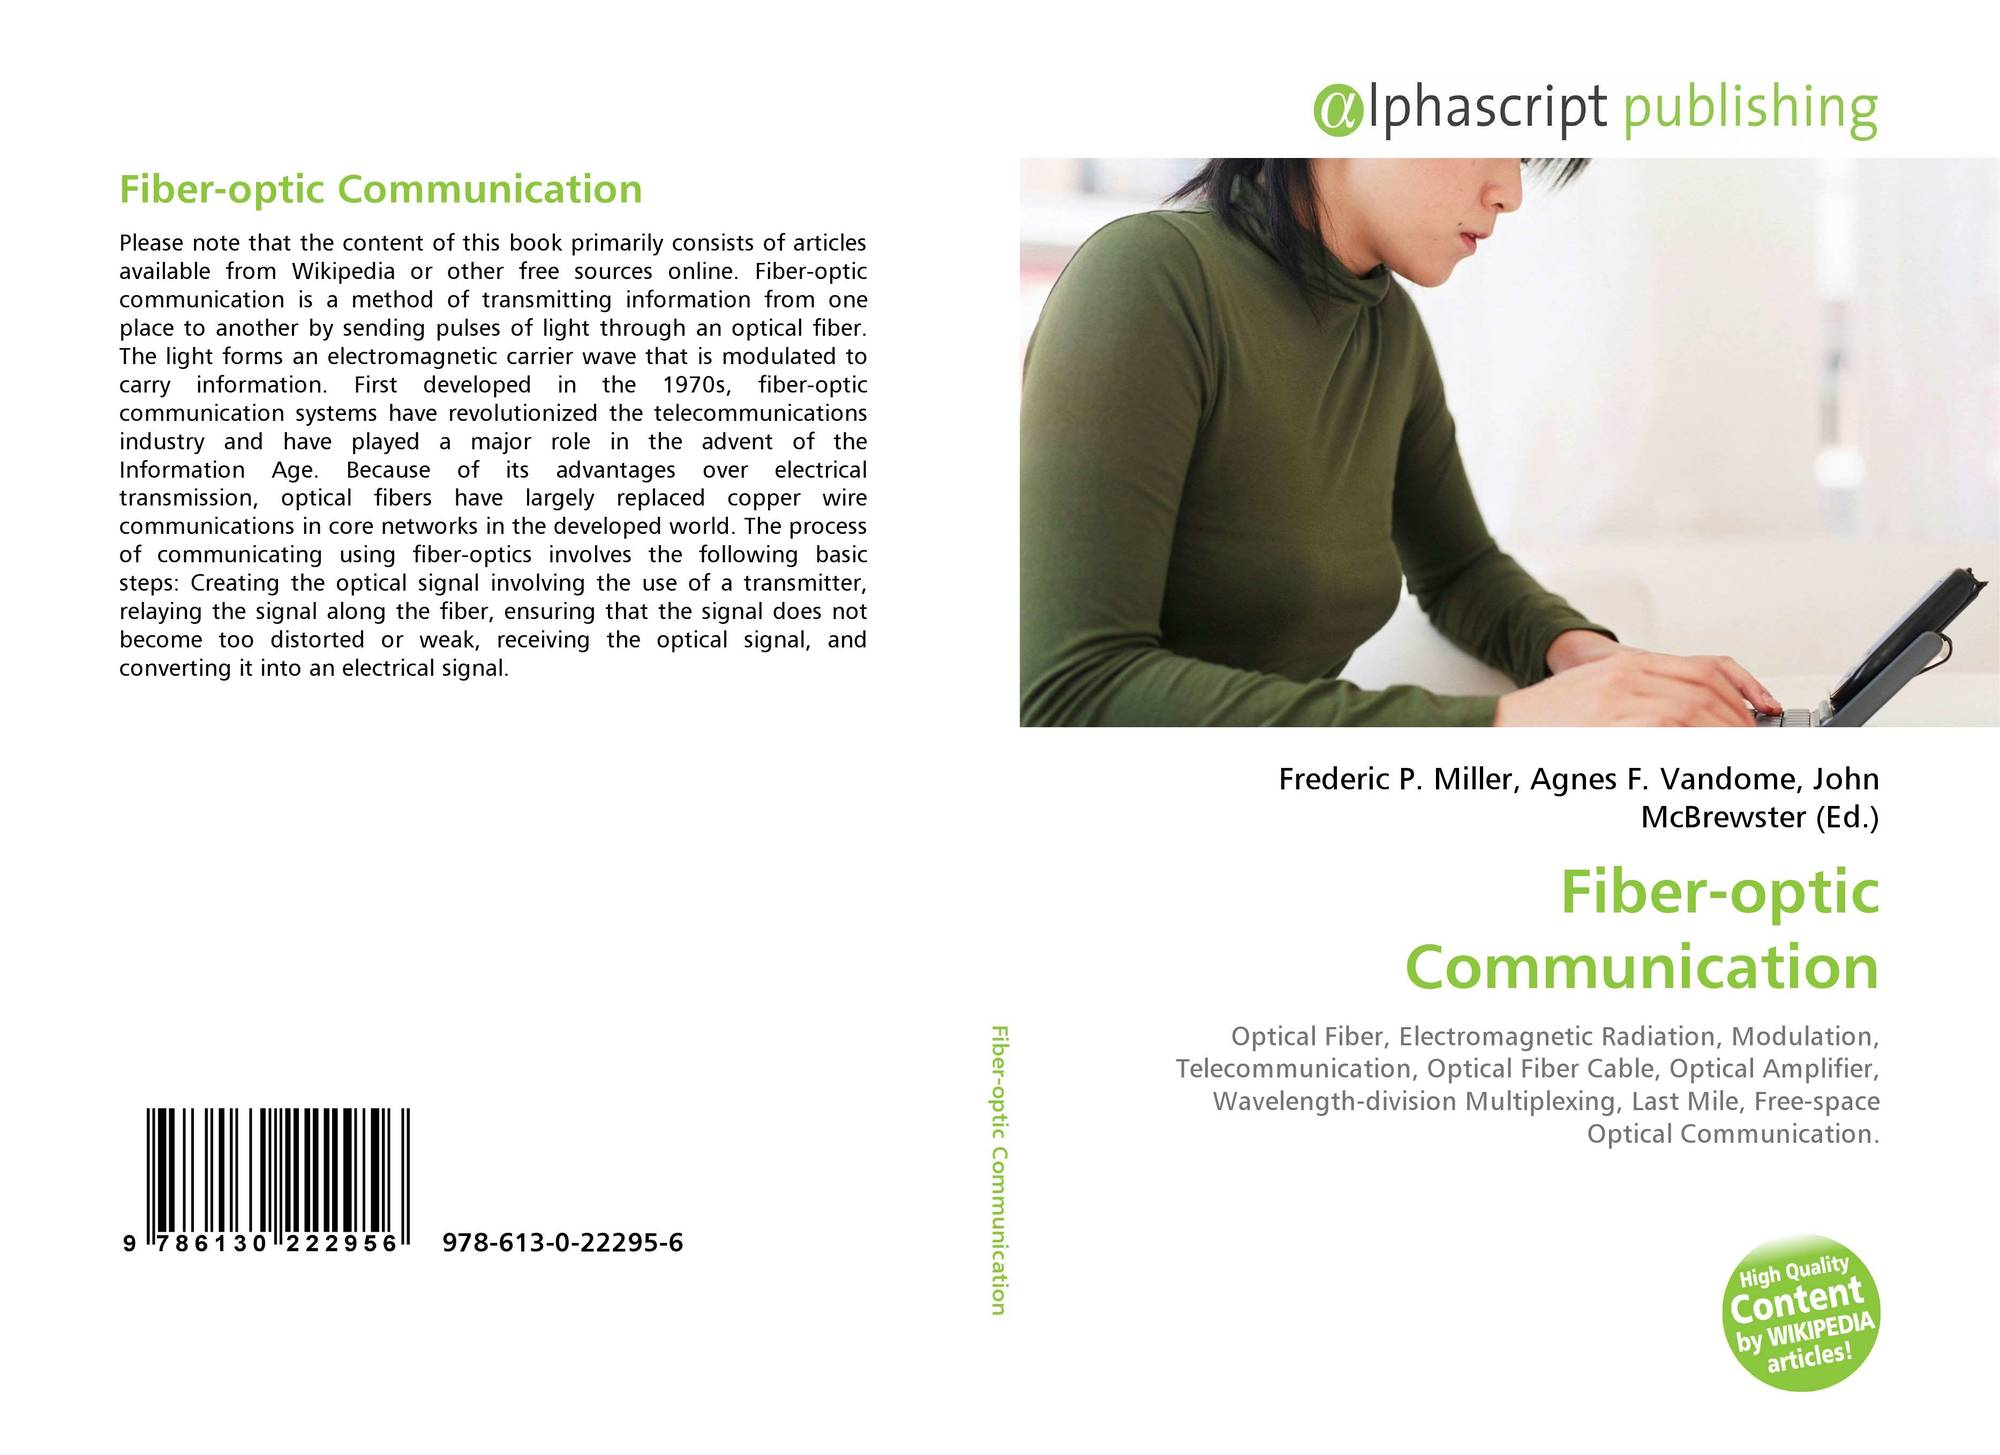 essay optical fibres and advantages over other devices ori Fiber-optic systems are used in most modern telemedicine devices for transmission of digital diagnostic images other applications for optical fiber include space, military, automotive, and the industrial sector 3.